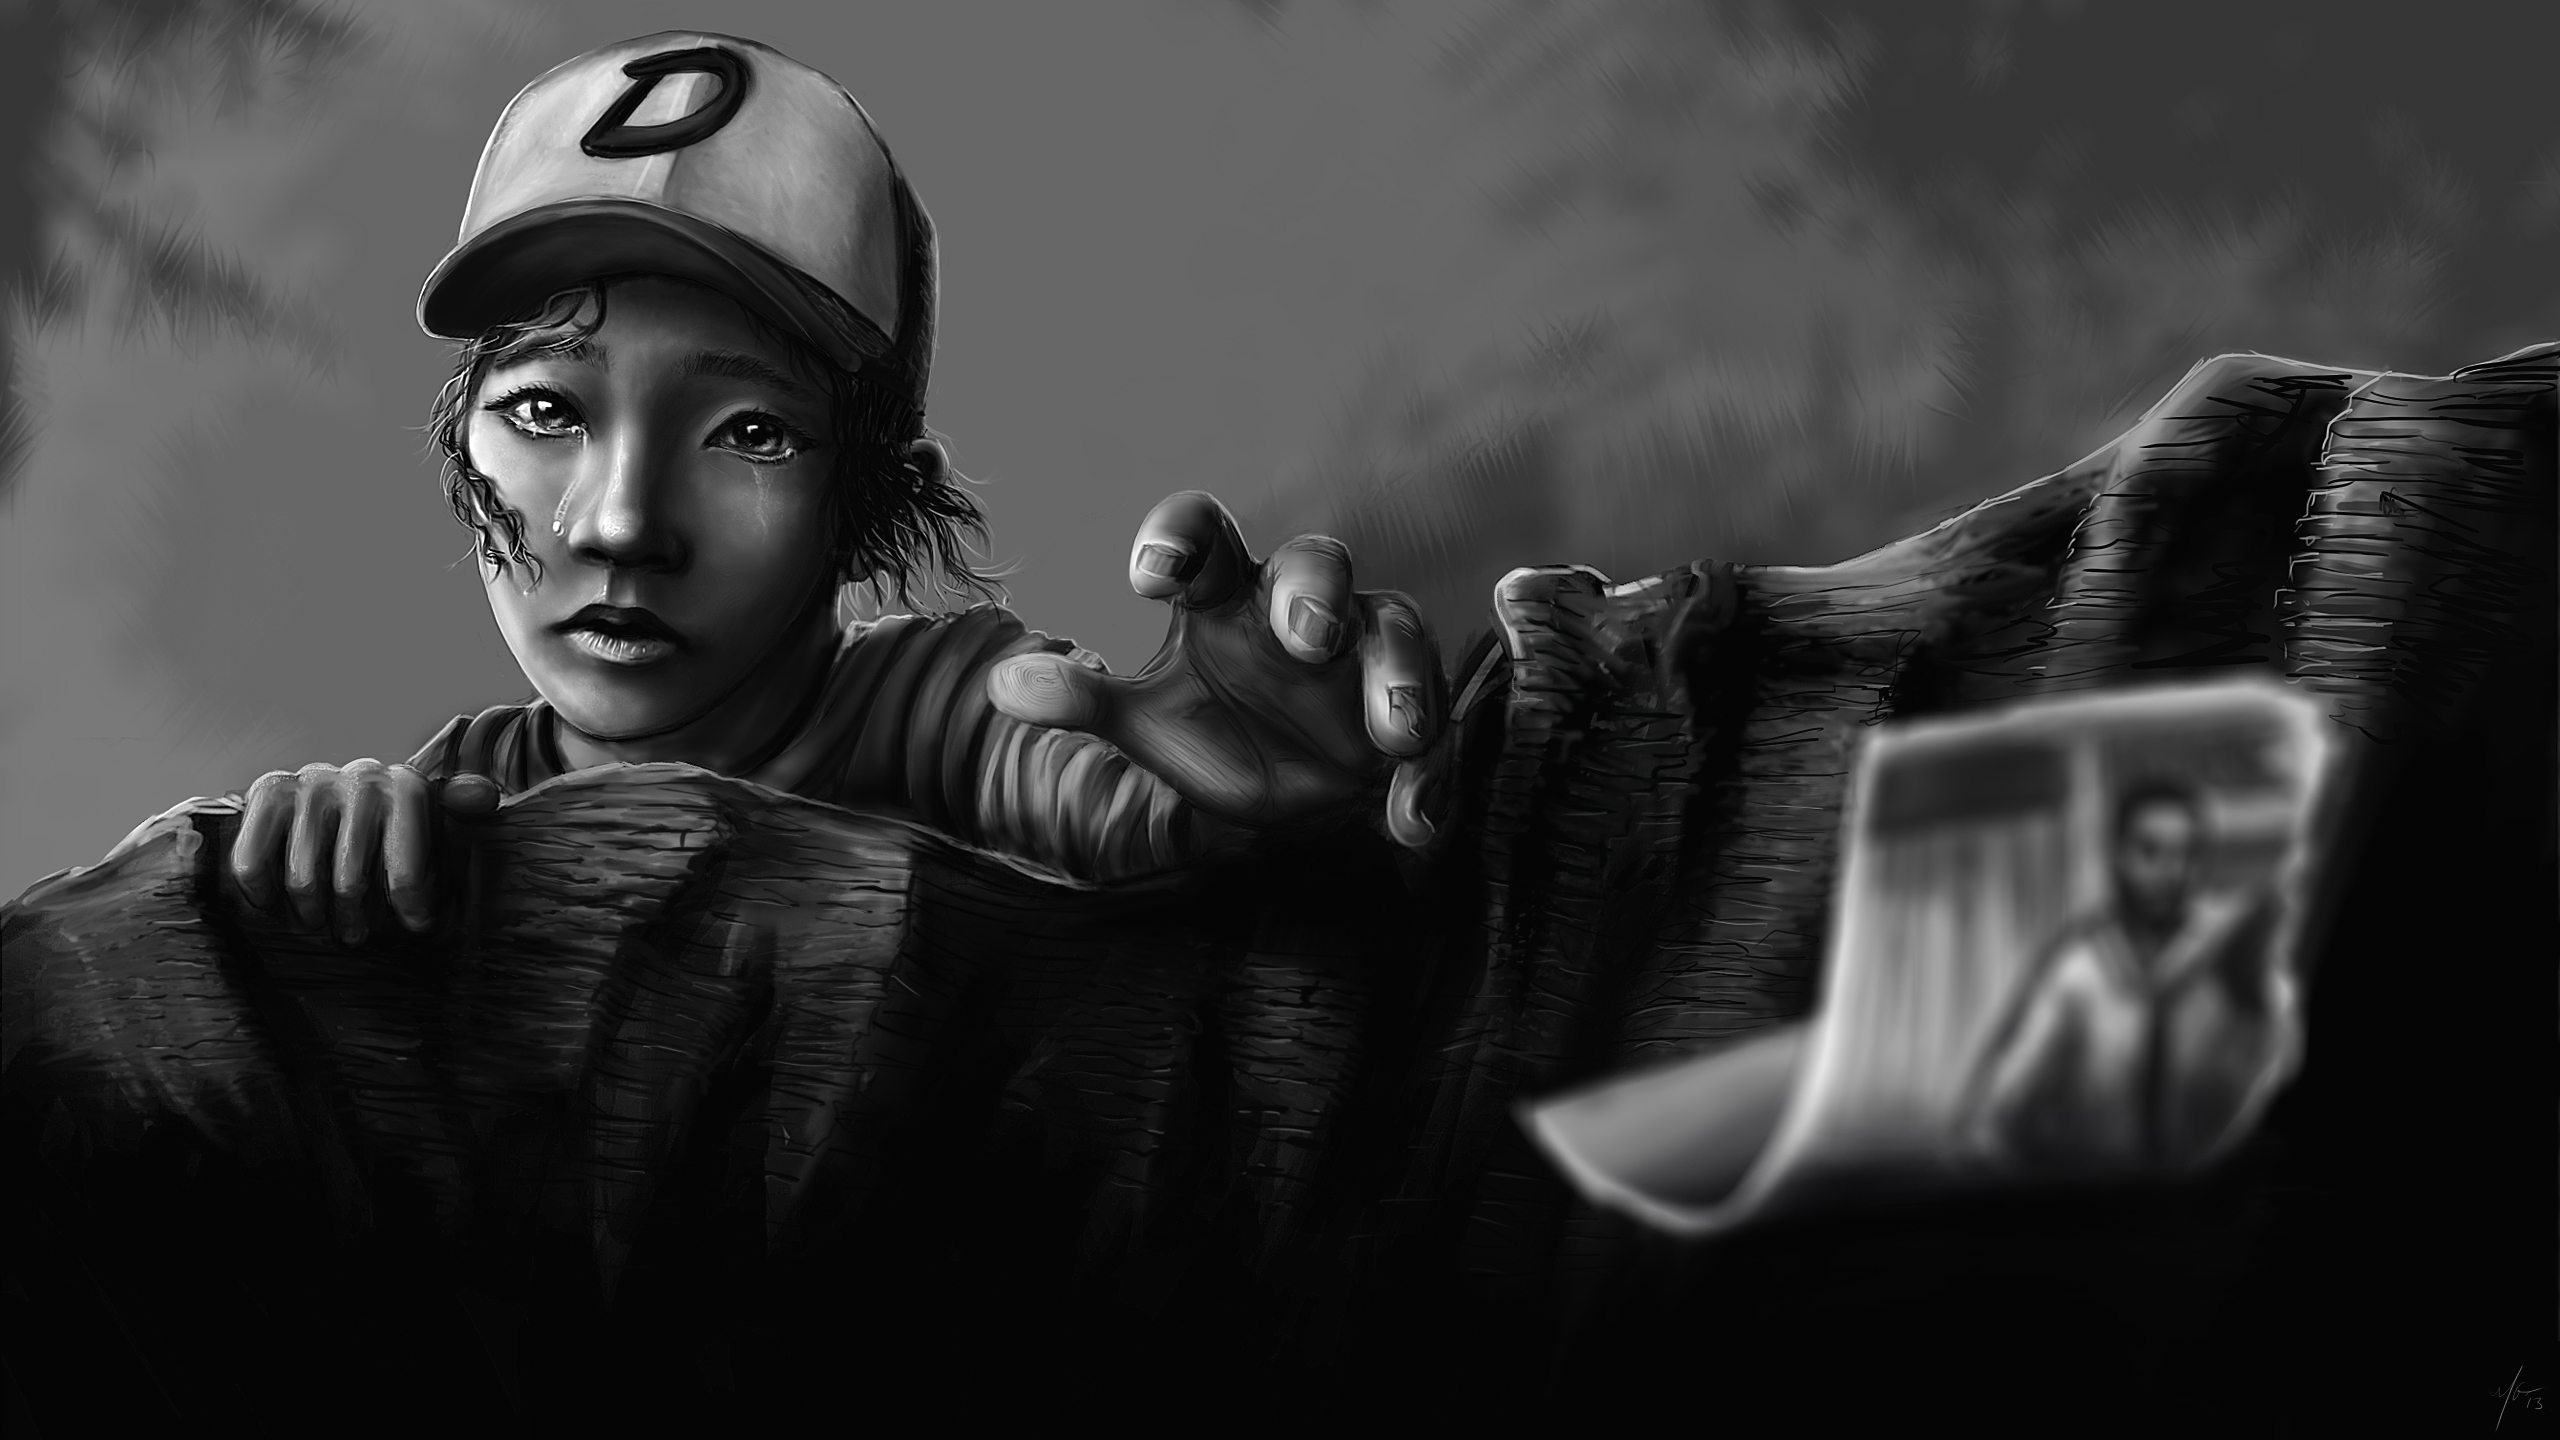 25 Clementine (The Walking Dead) HD Wallpapers | Backgrounds